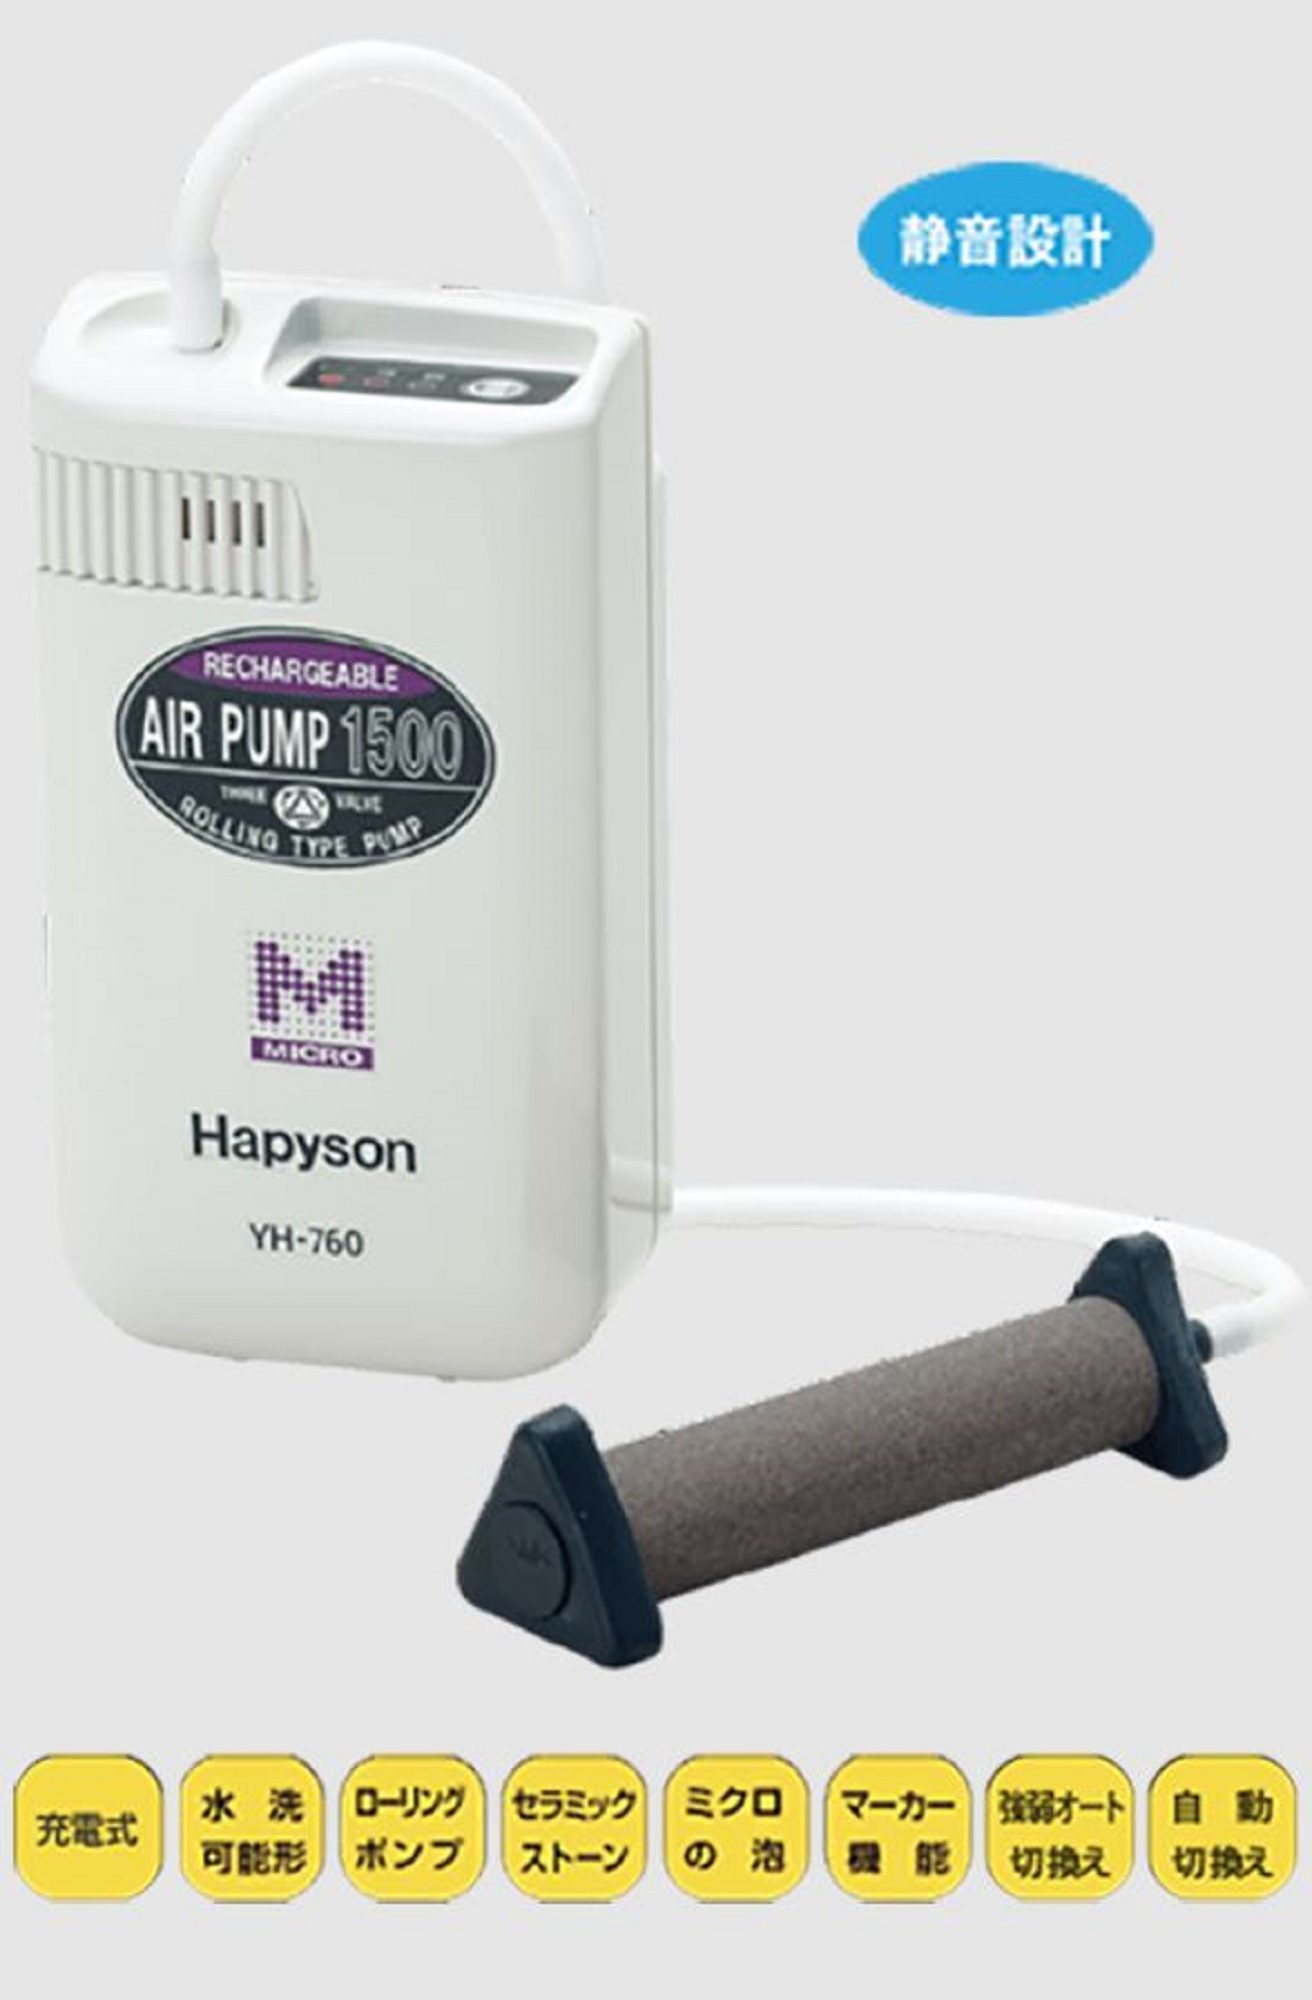 Hapyson YH-760 Air Pump USB Rechargeable Rolling Aerater (2782)